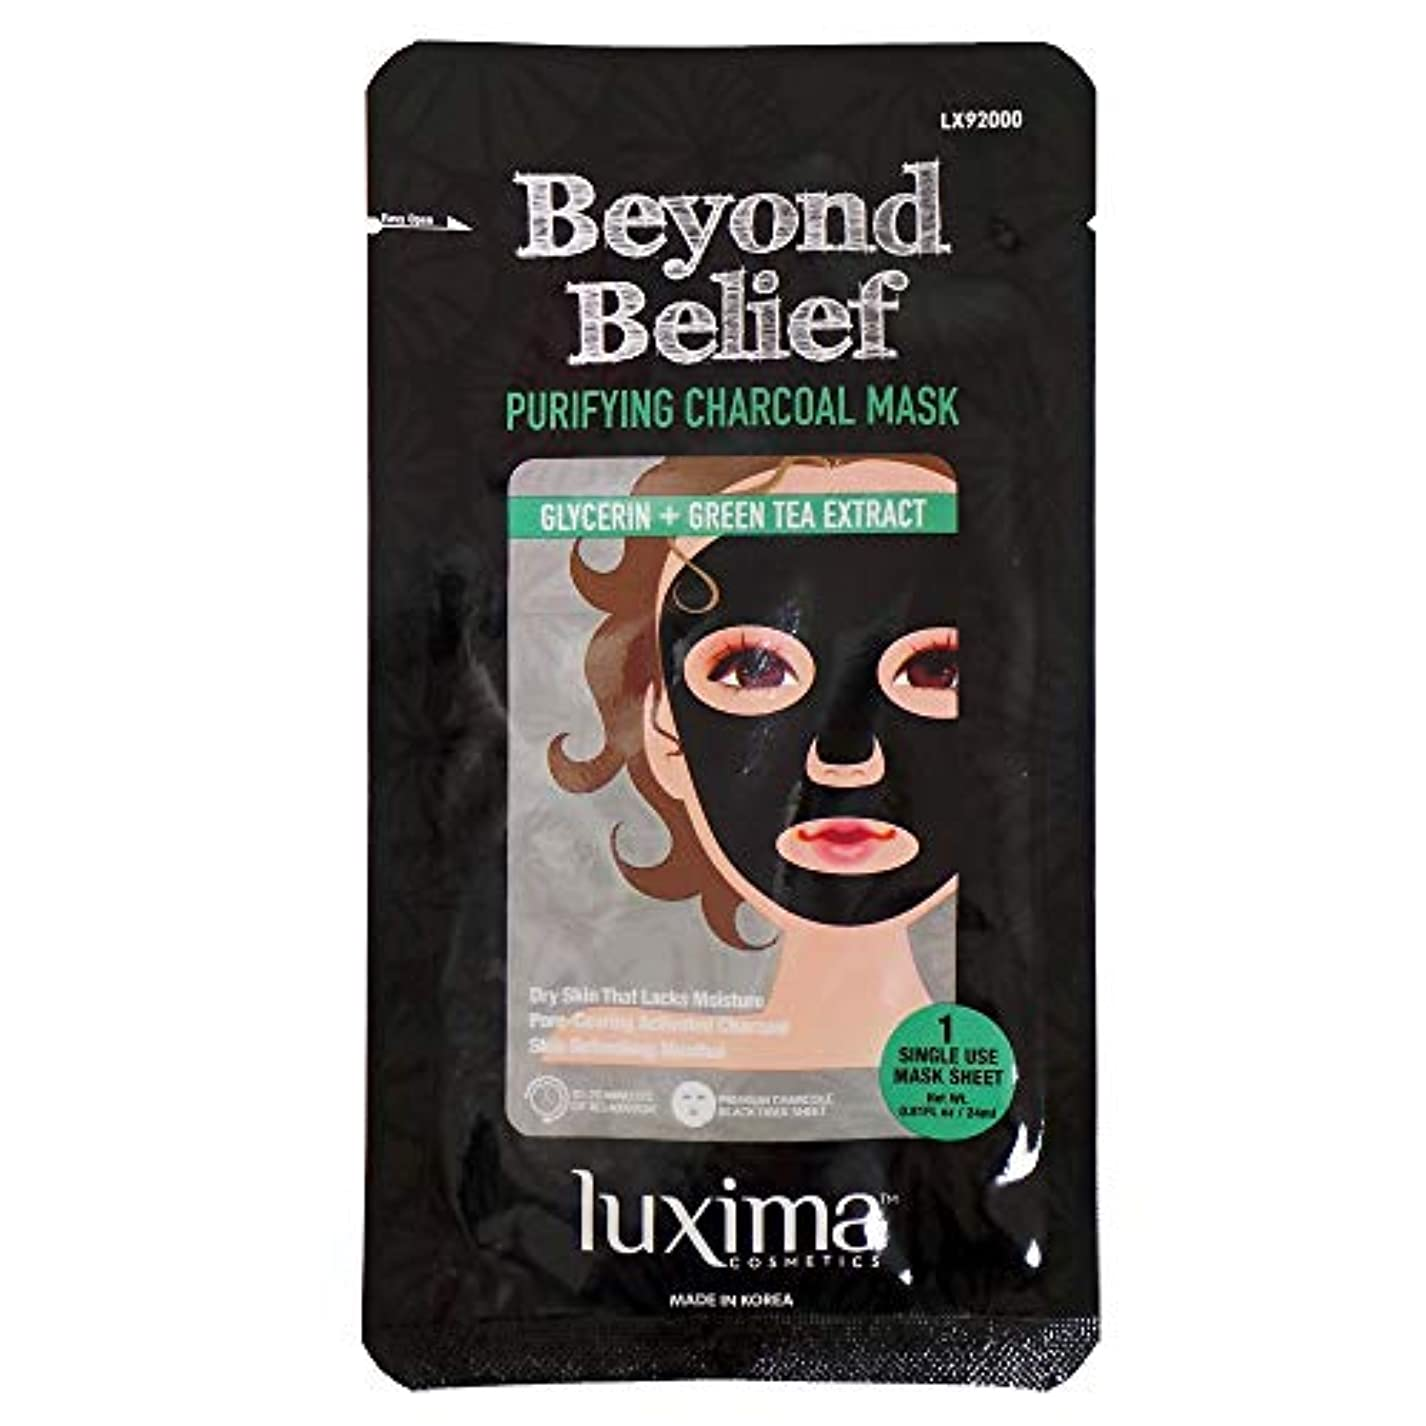 たらい骨折装備する(3 Pack) LUXIMA Beyond Belief Purifying Charcoal Mask (並行輸入品)